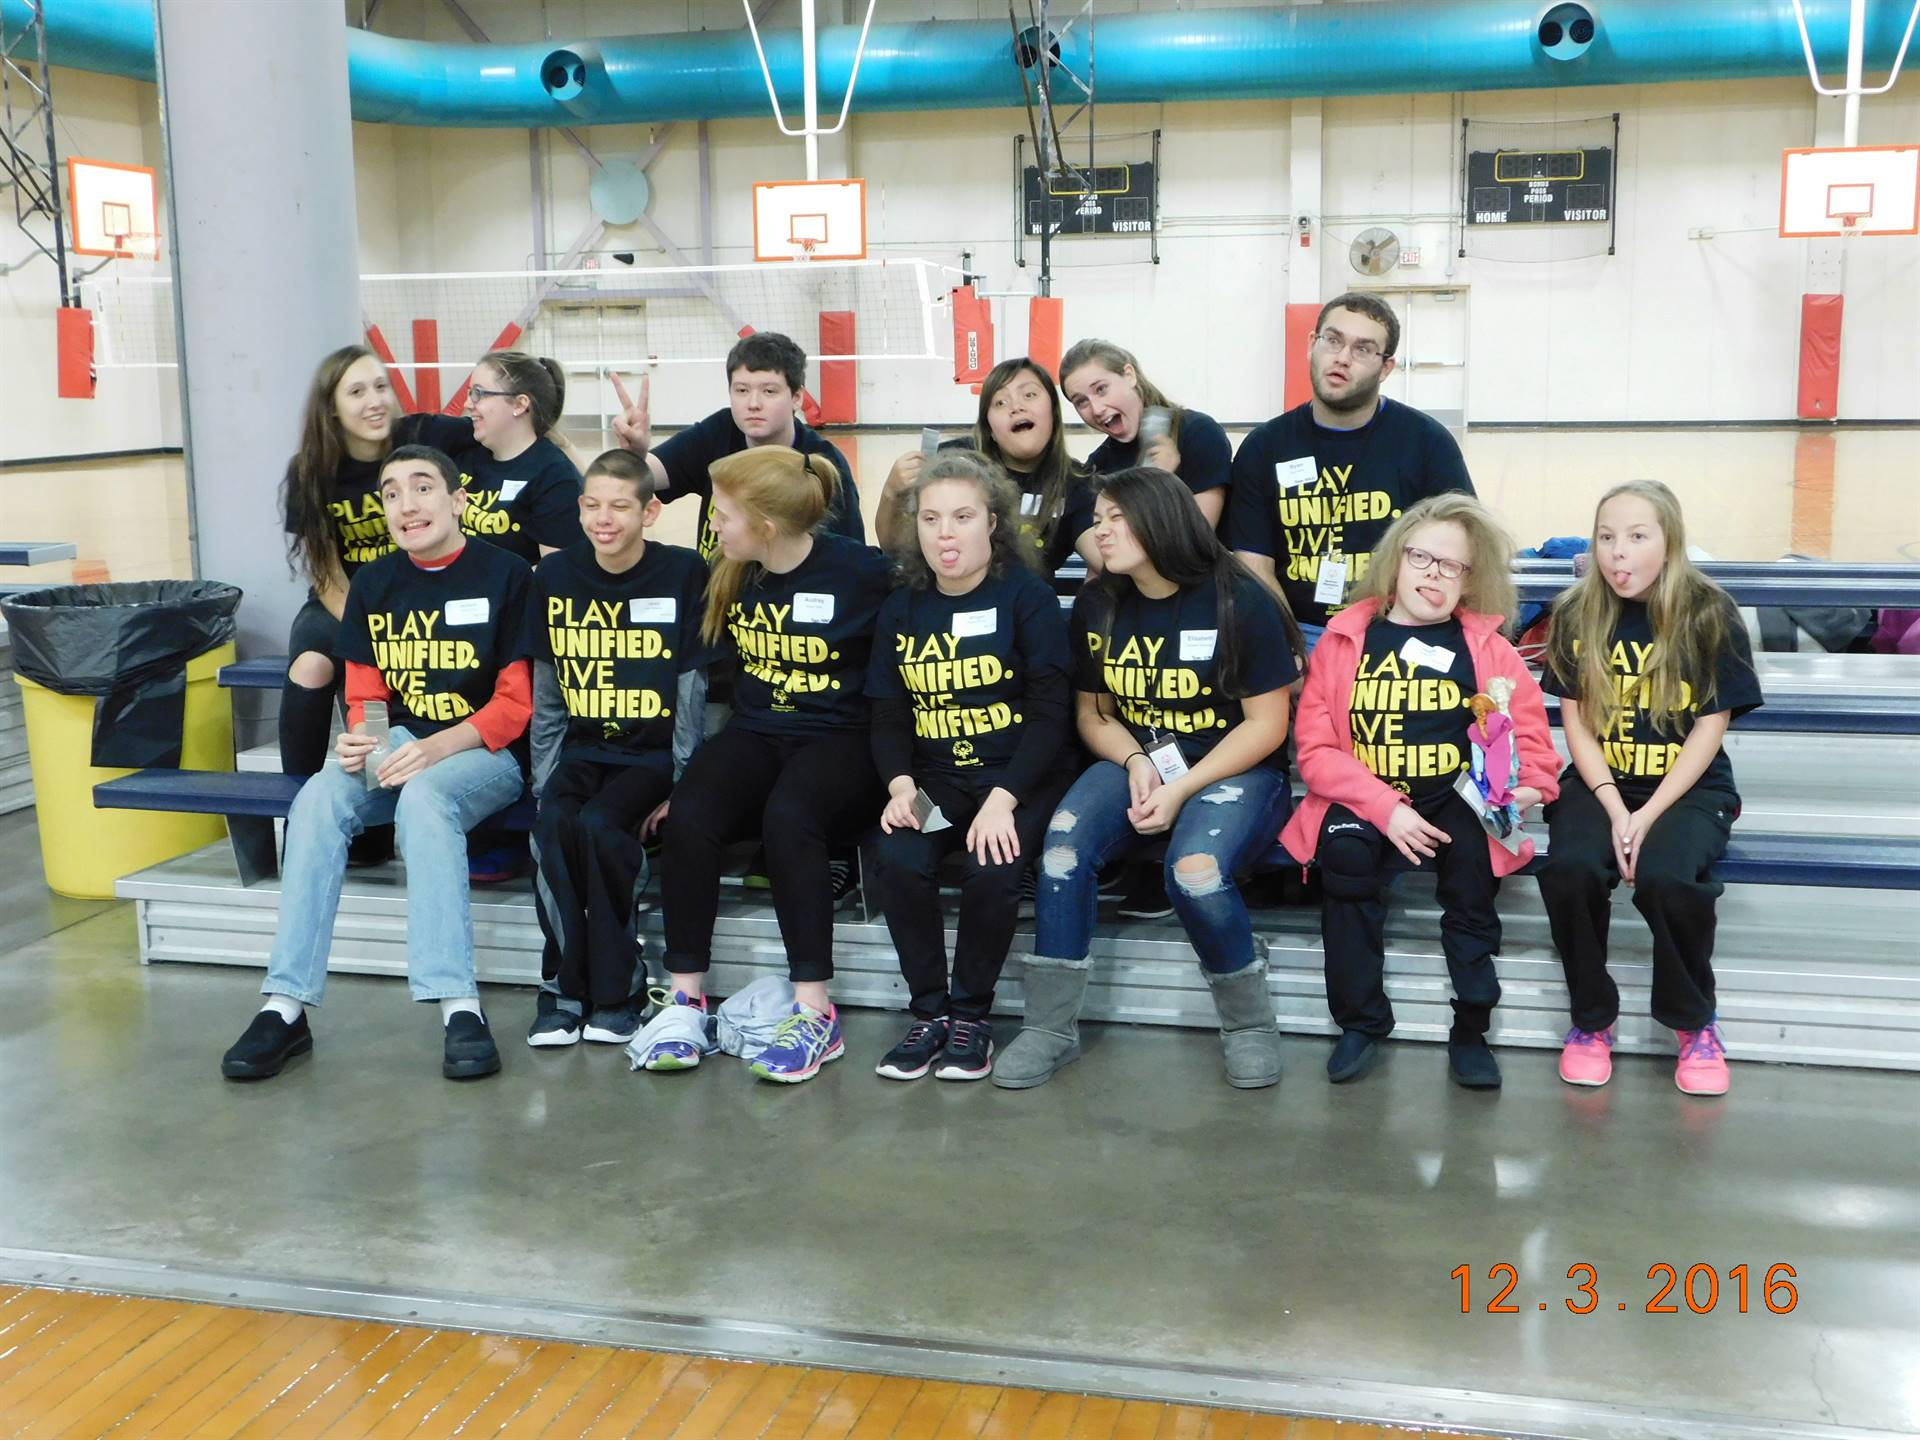 Unified Day at University of Iowa